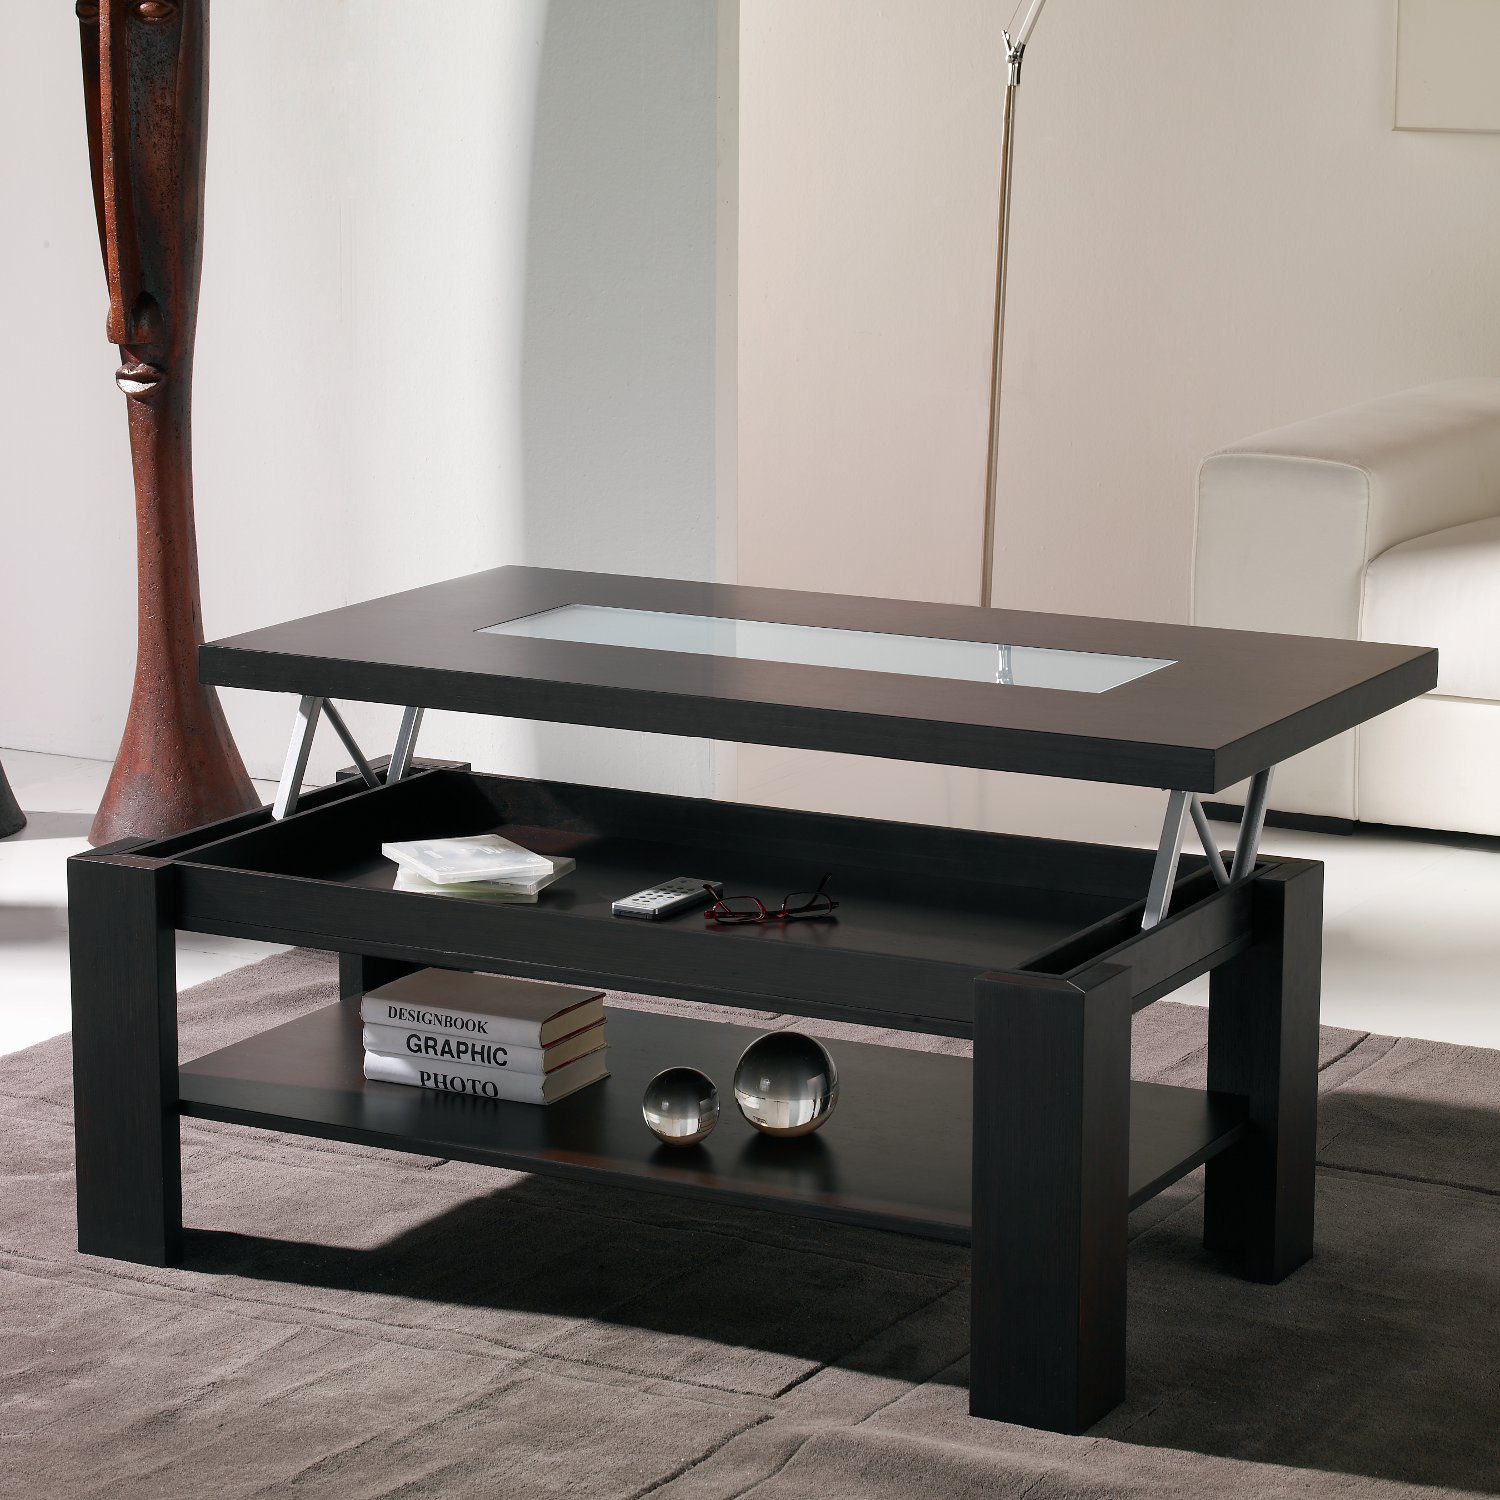 Table basse relevable de salon - But table basse de salon ...